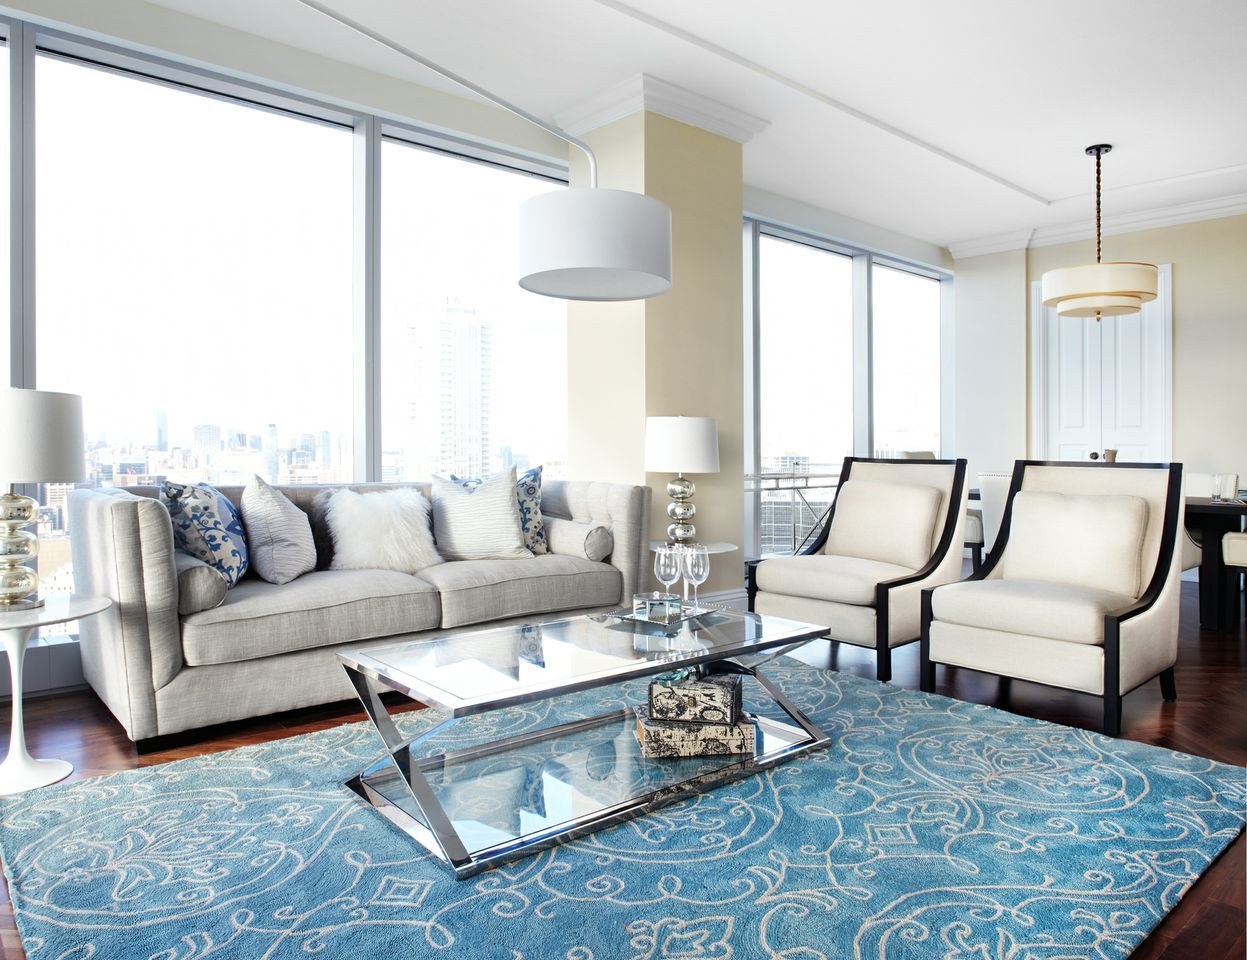 RoomReveal - The Ritz, Condo- Living Space, Toronto by Lux Design ...